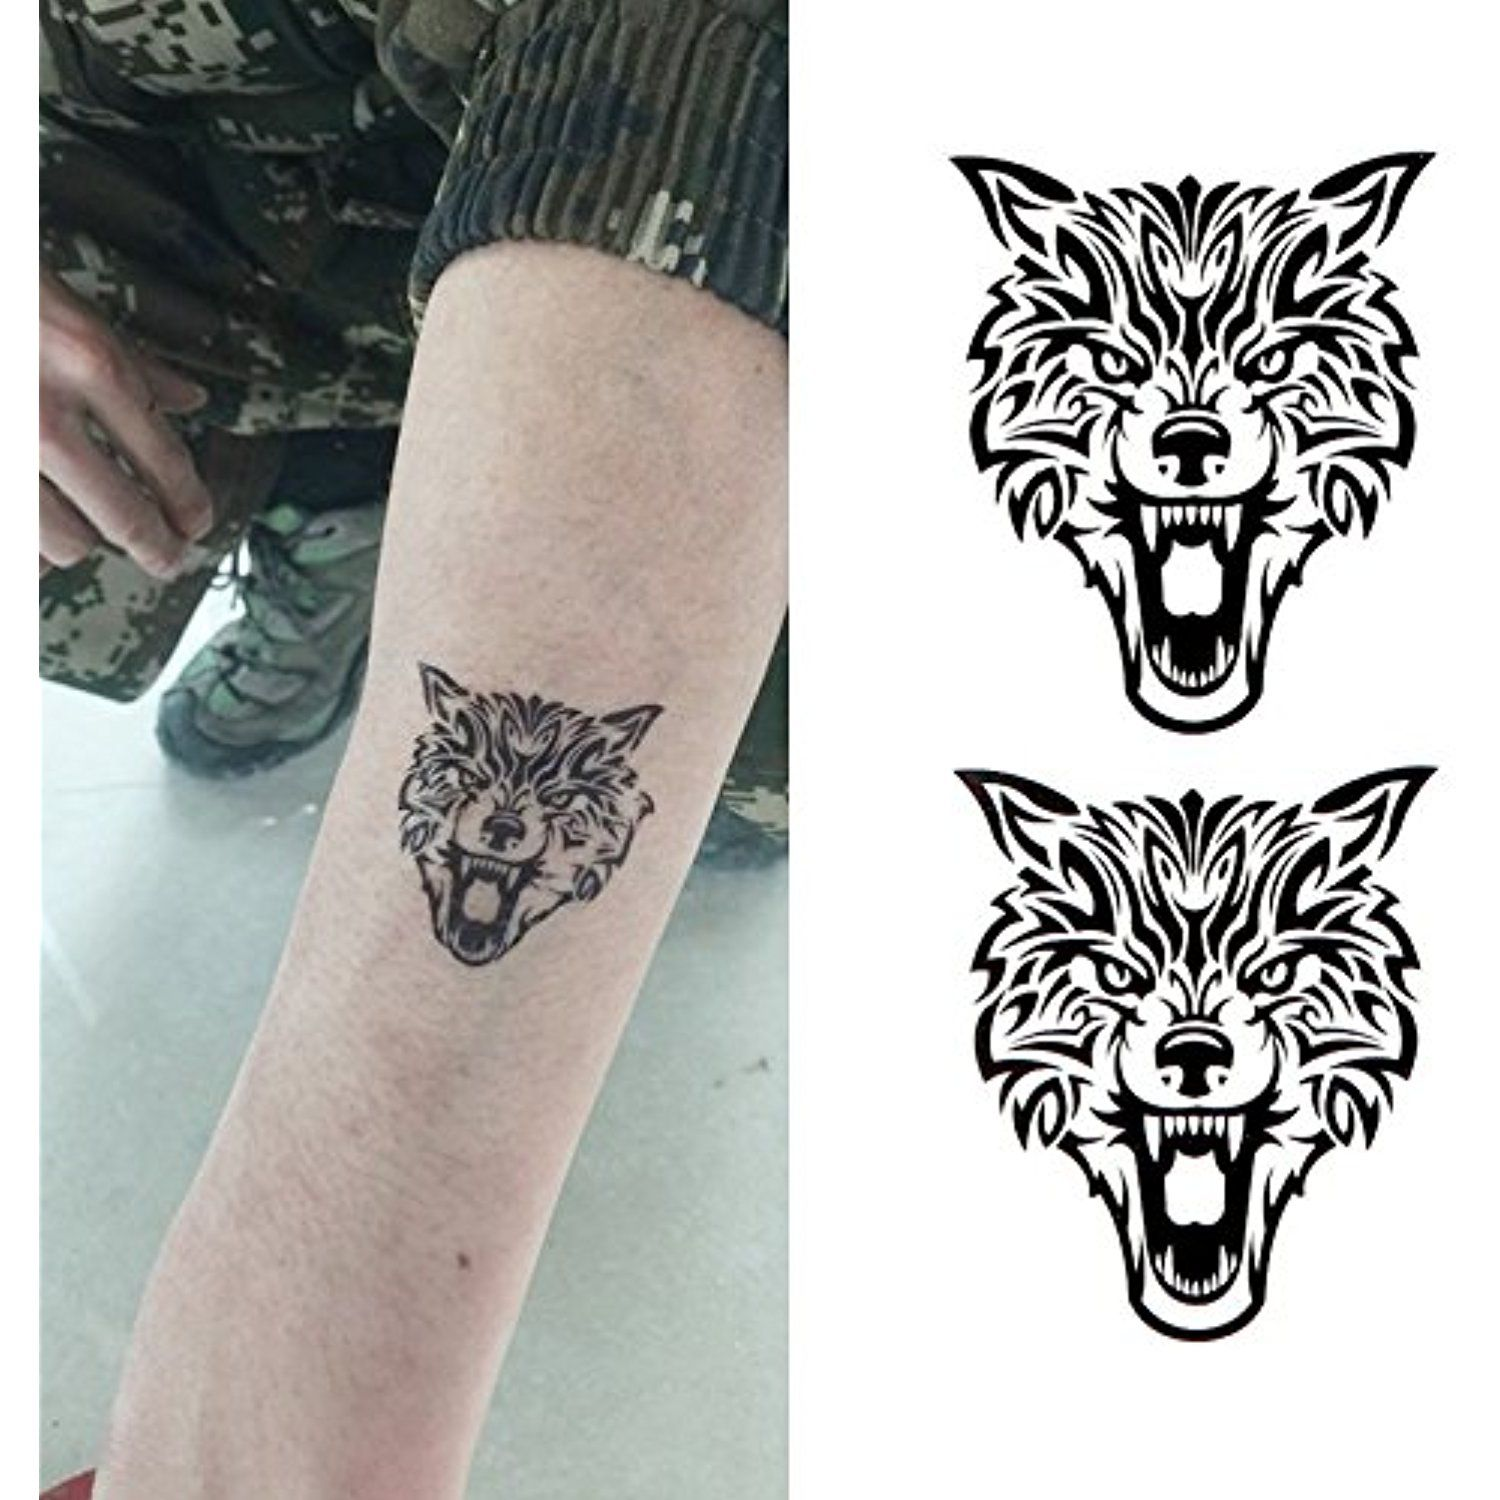 Oottati Small Cute Temporary Tattoo Wolf Totem 2 Sheets Read More At The Image Link This Is An Affiliate Link And Wolf Tattoos Tattoos Temporary Tattoos